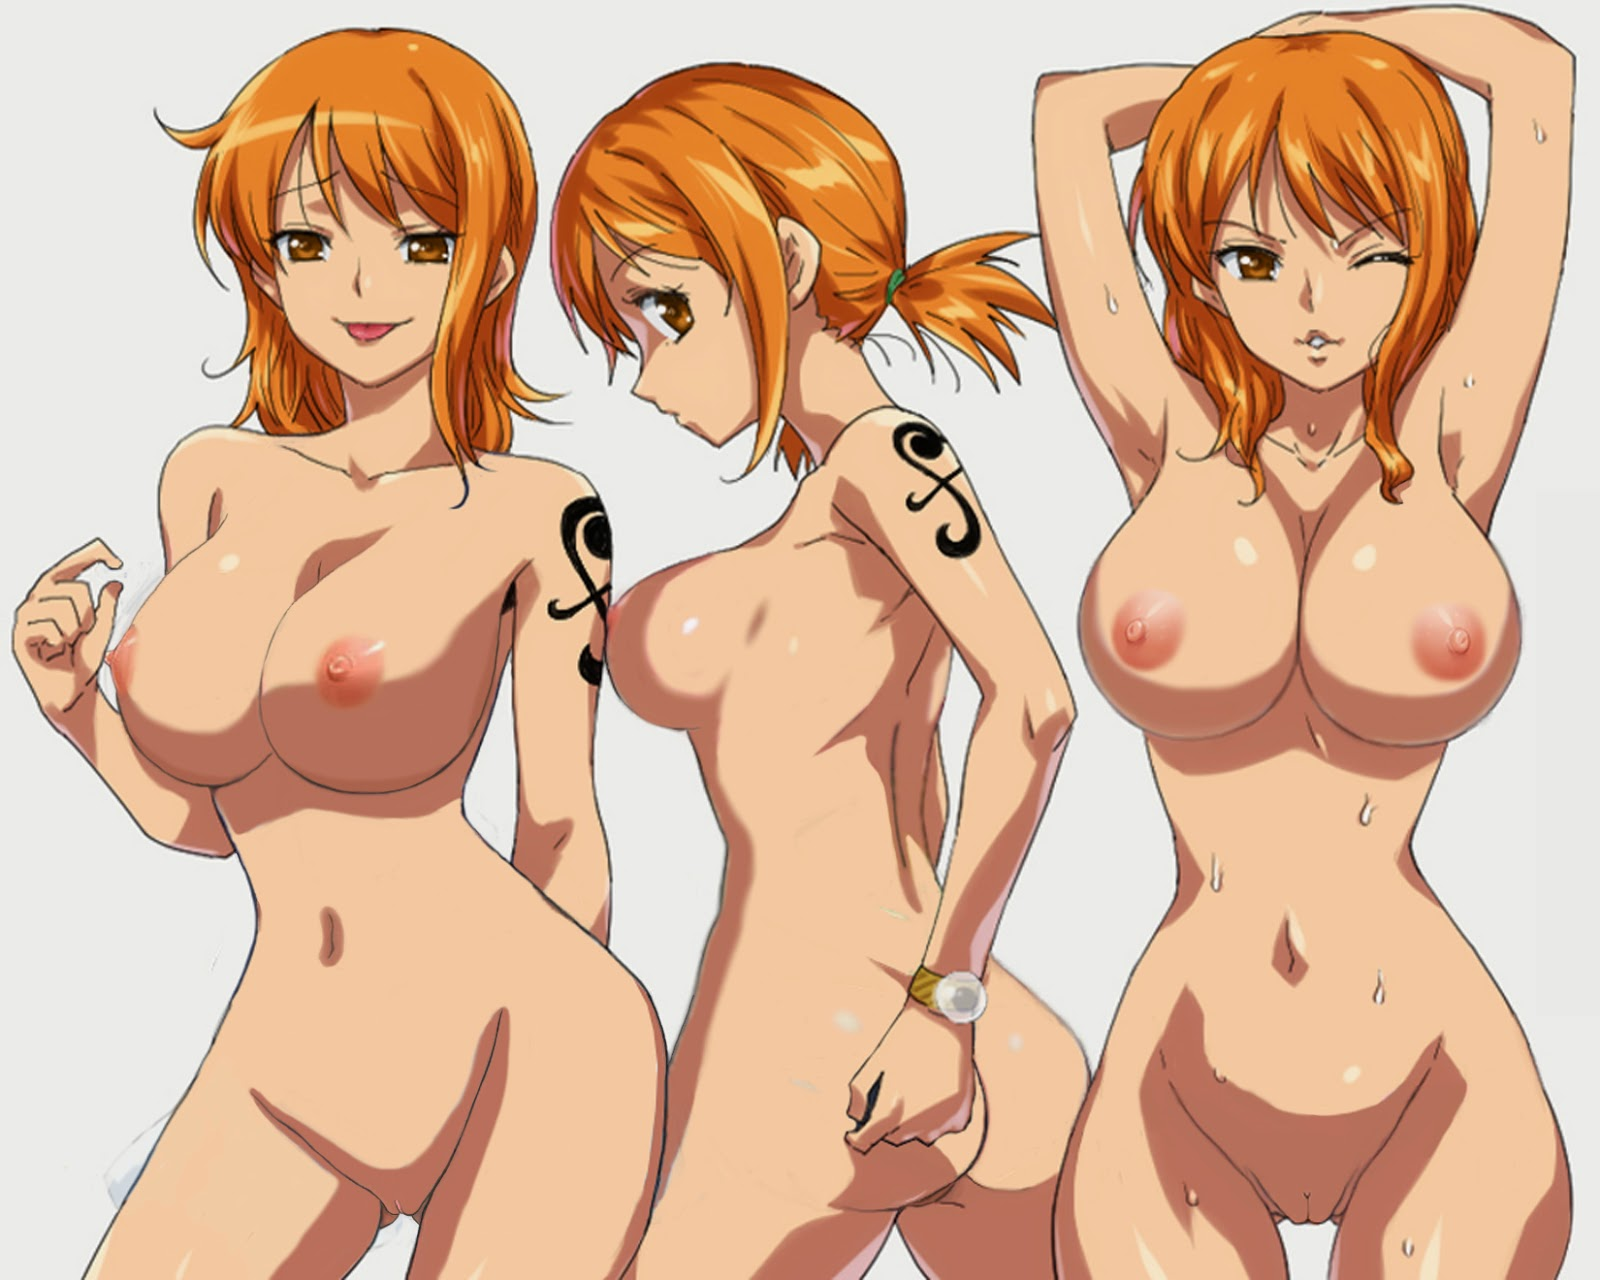 image One piece nami titfuck english subbed